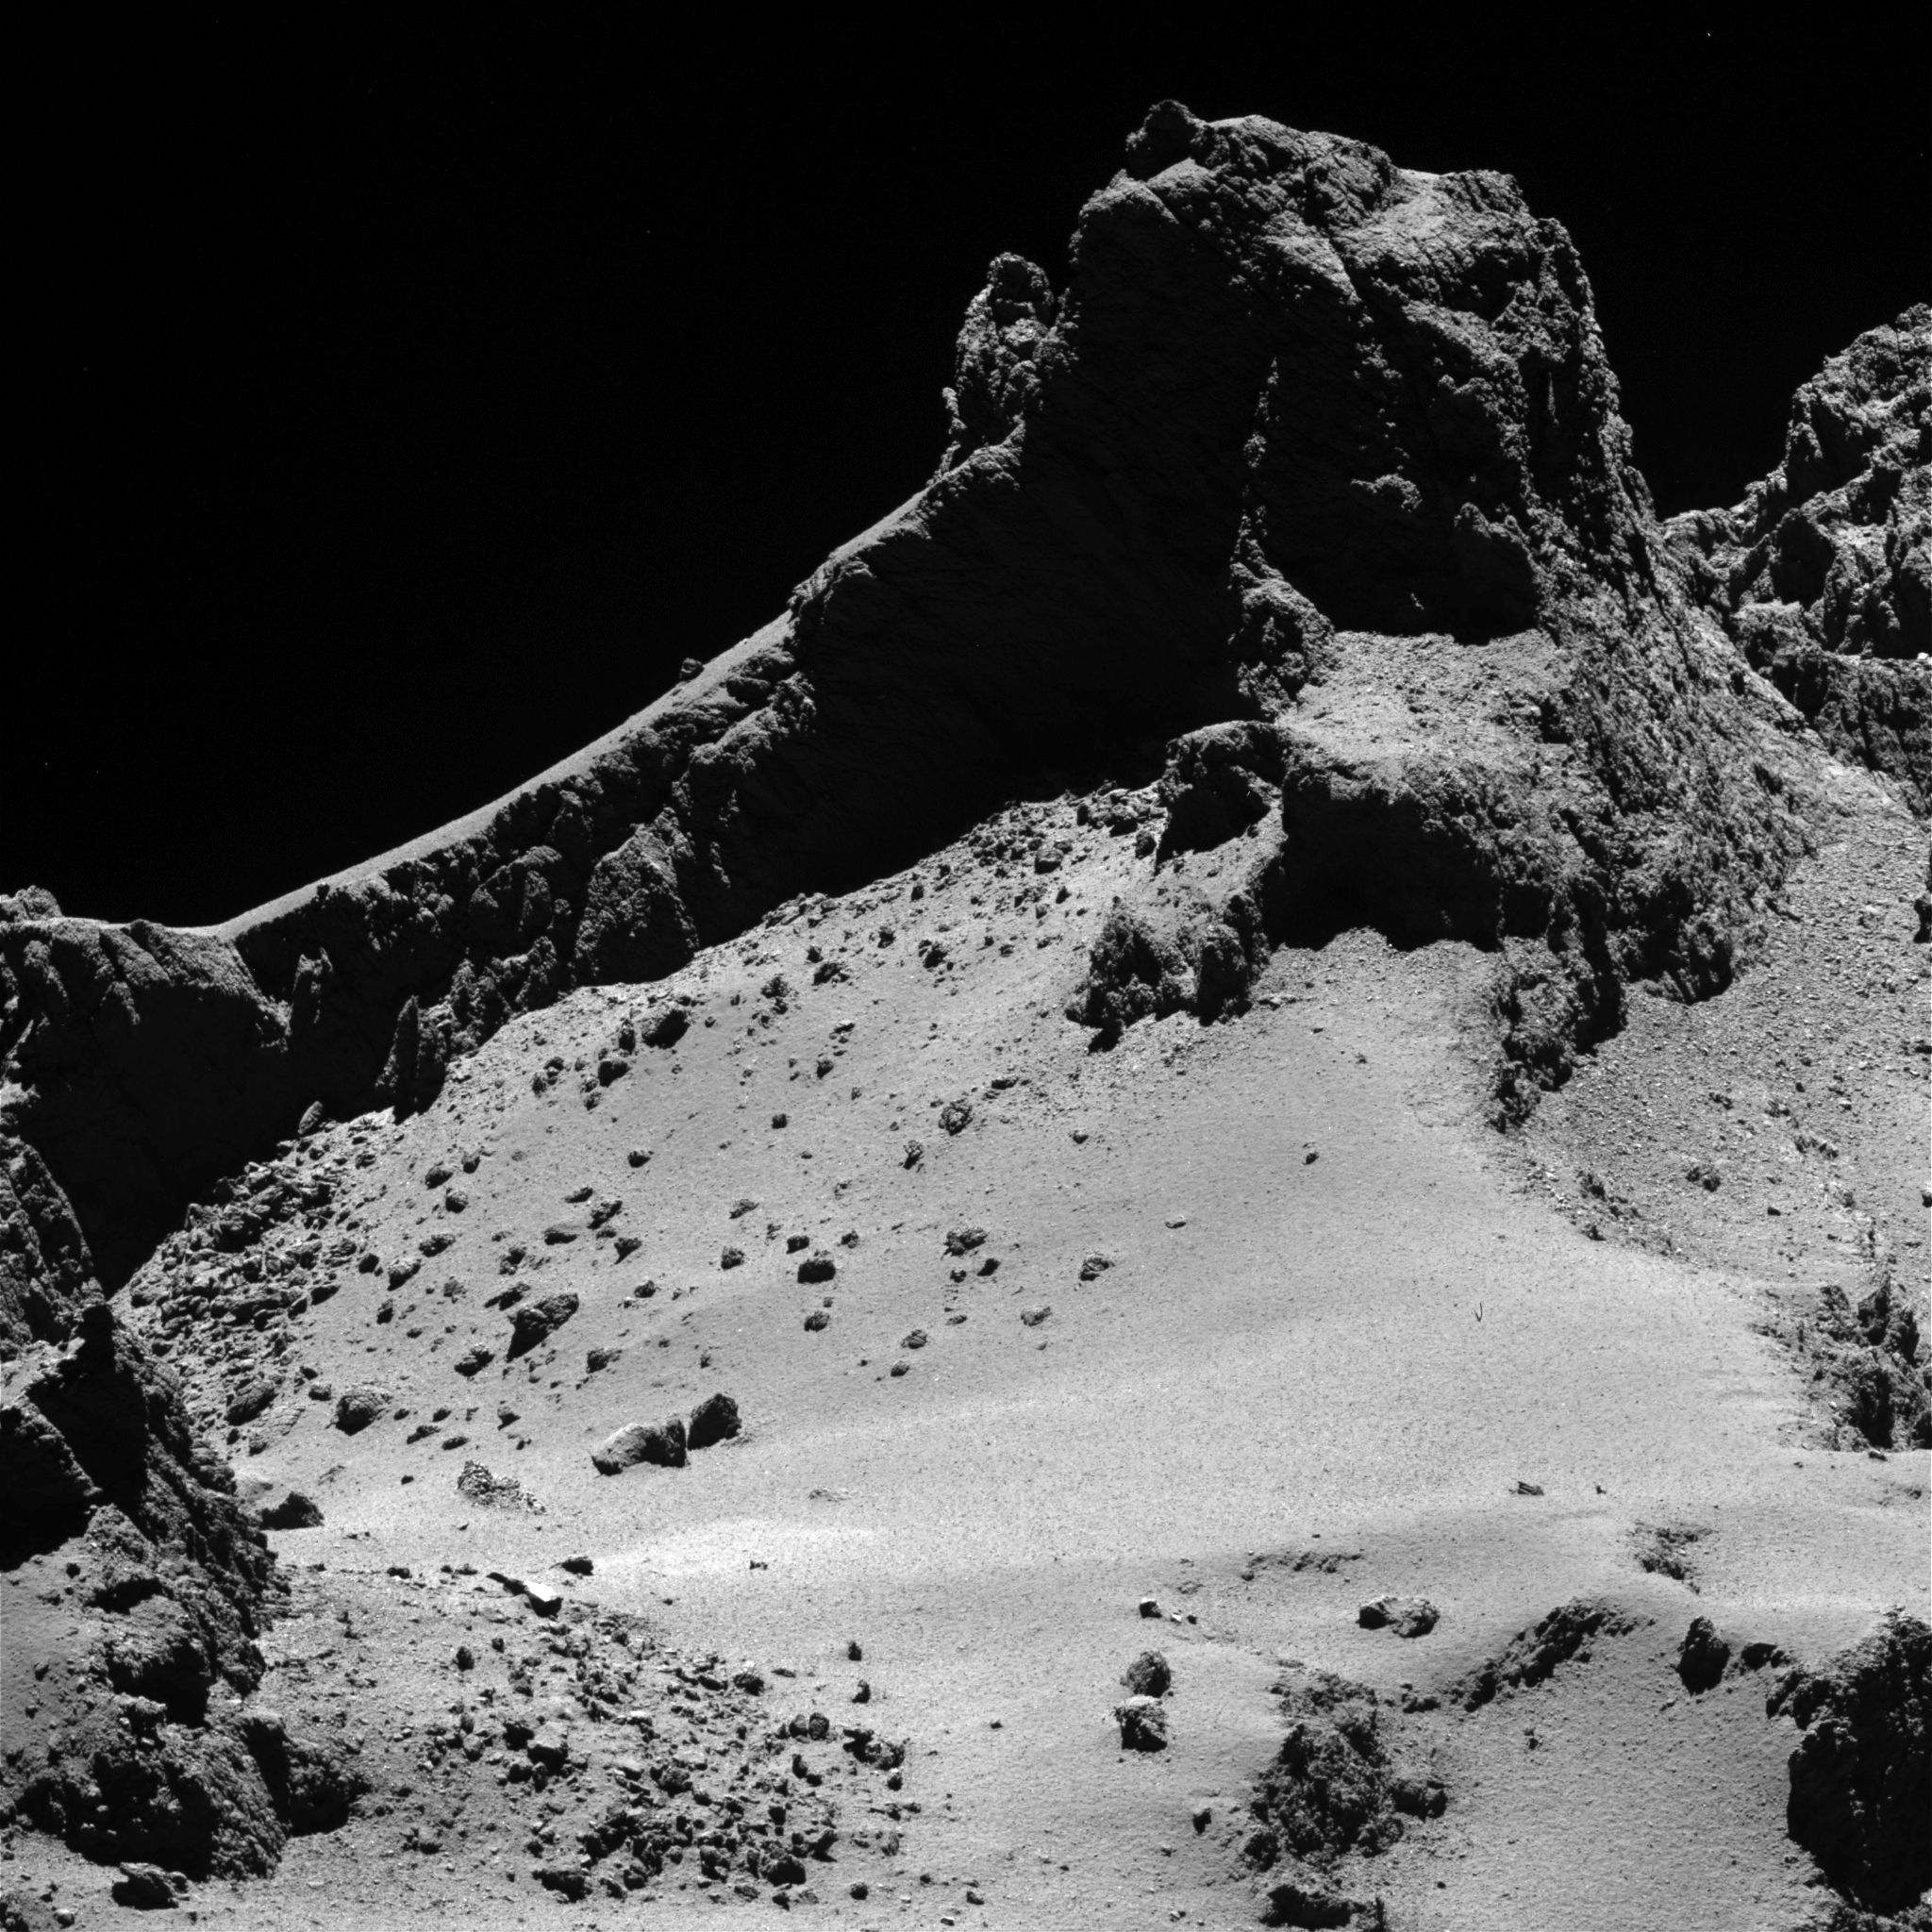 ESA Science & Technology: Comet 67P/C-G from 8 km